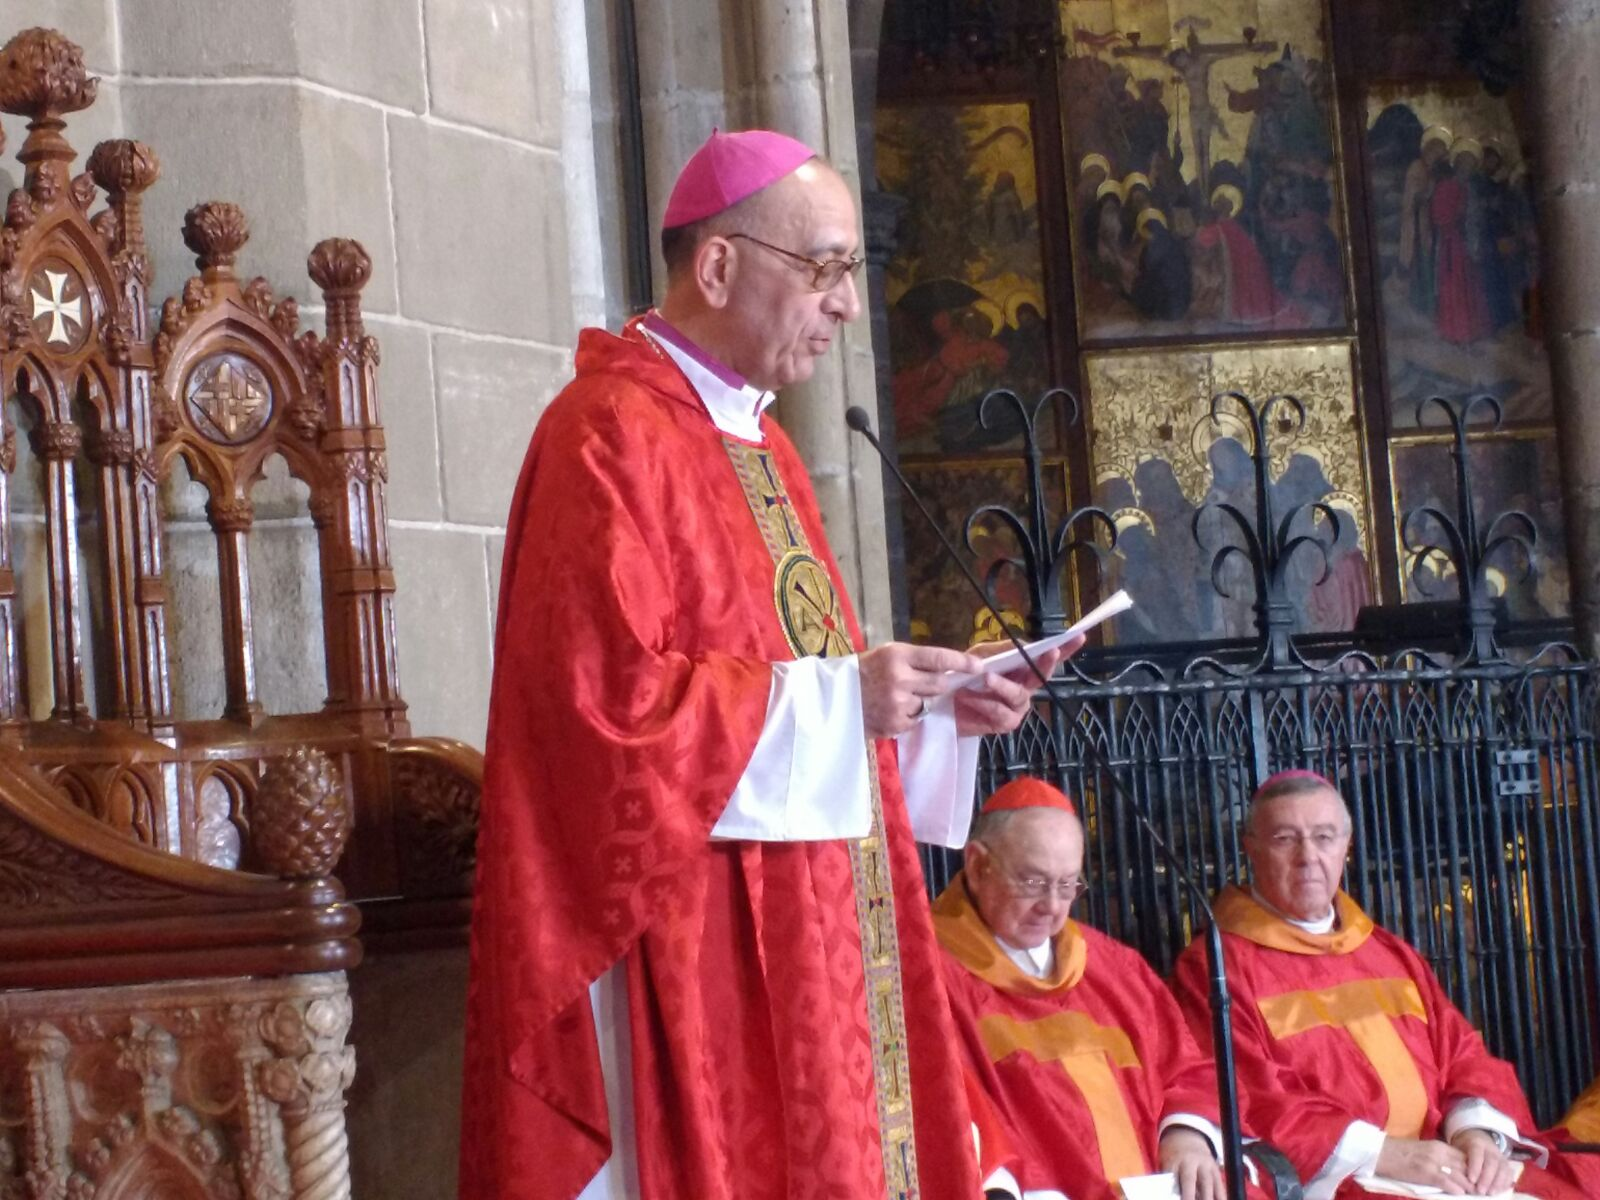 Inauguration of the new Bishop of Barcelona